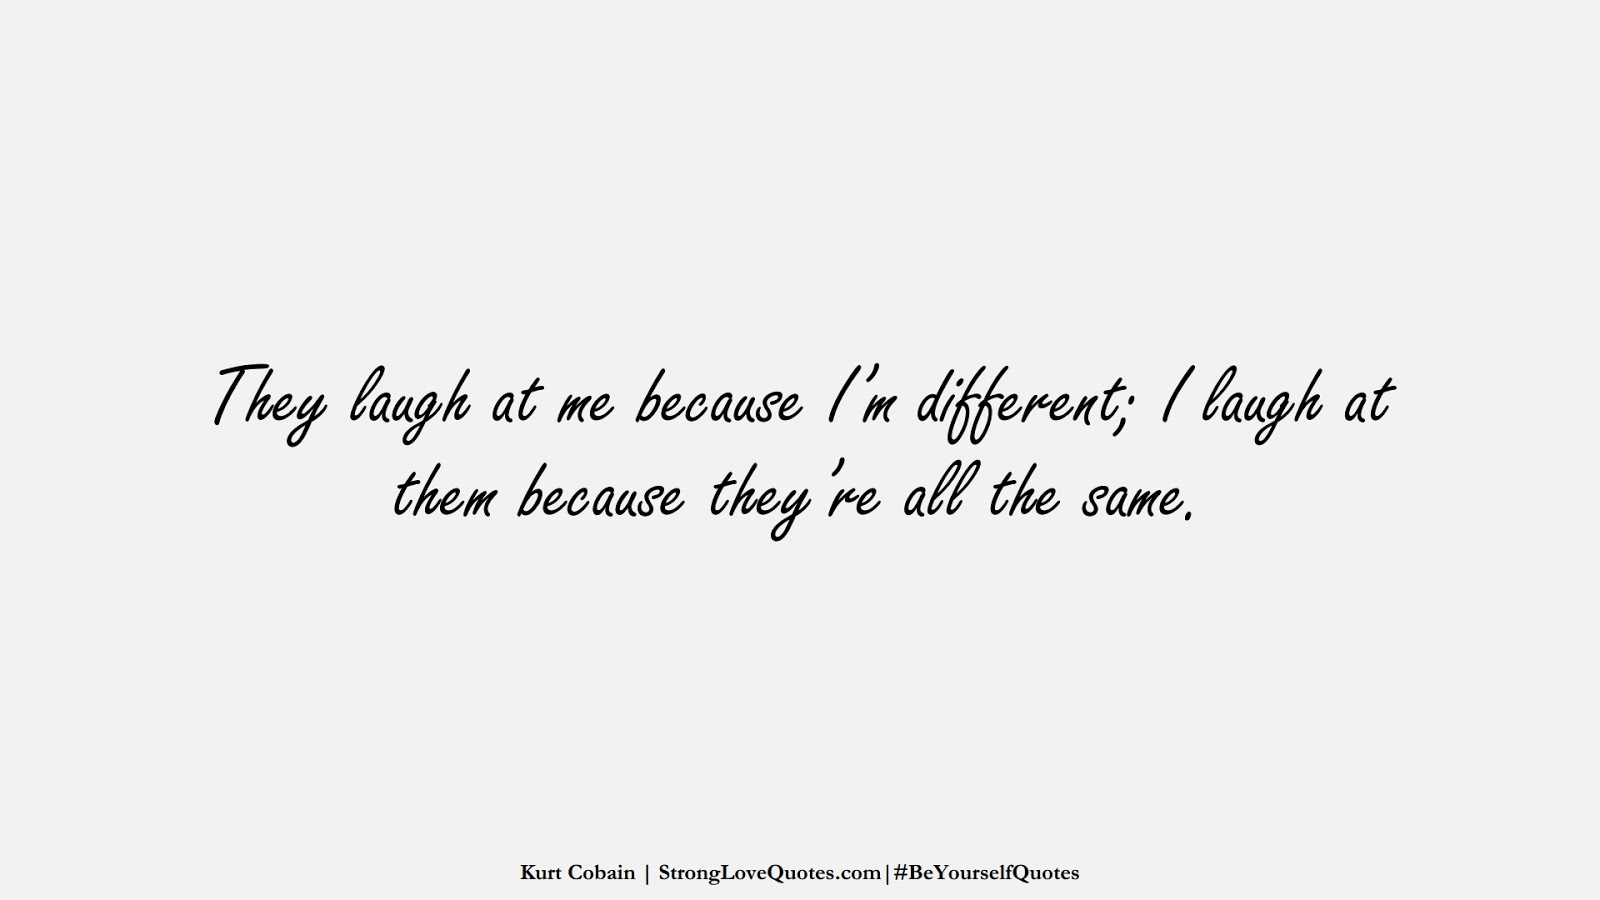 They laugh at me because I'm different; I laugh at them because they're all the same. (Kurt Cobain);  #BeYourselfQuotes